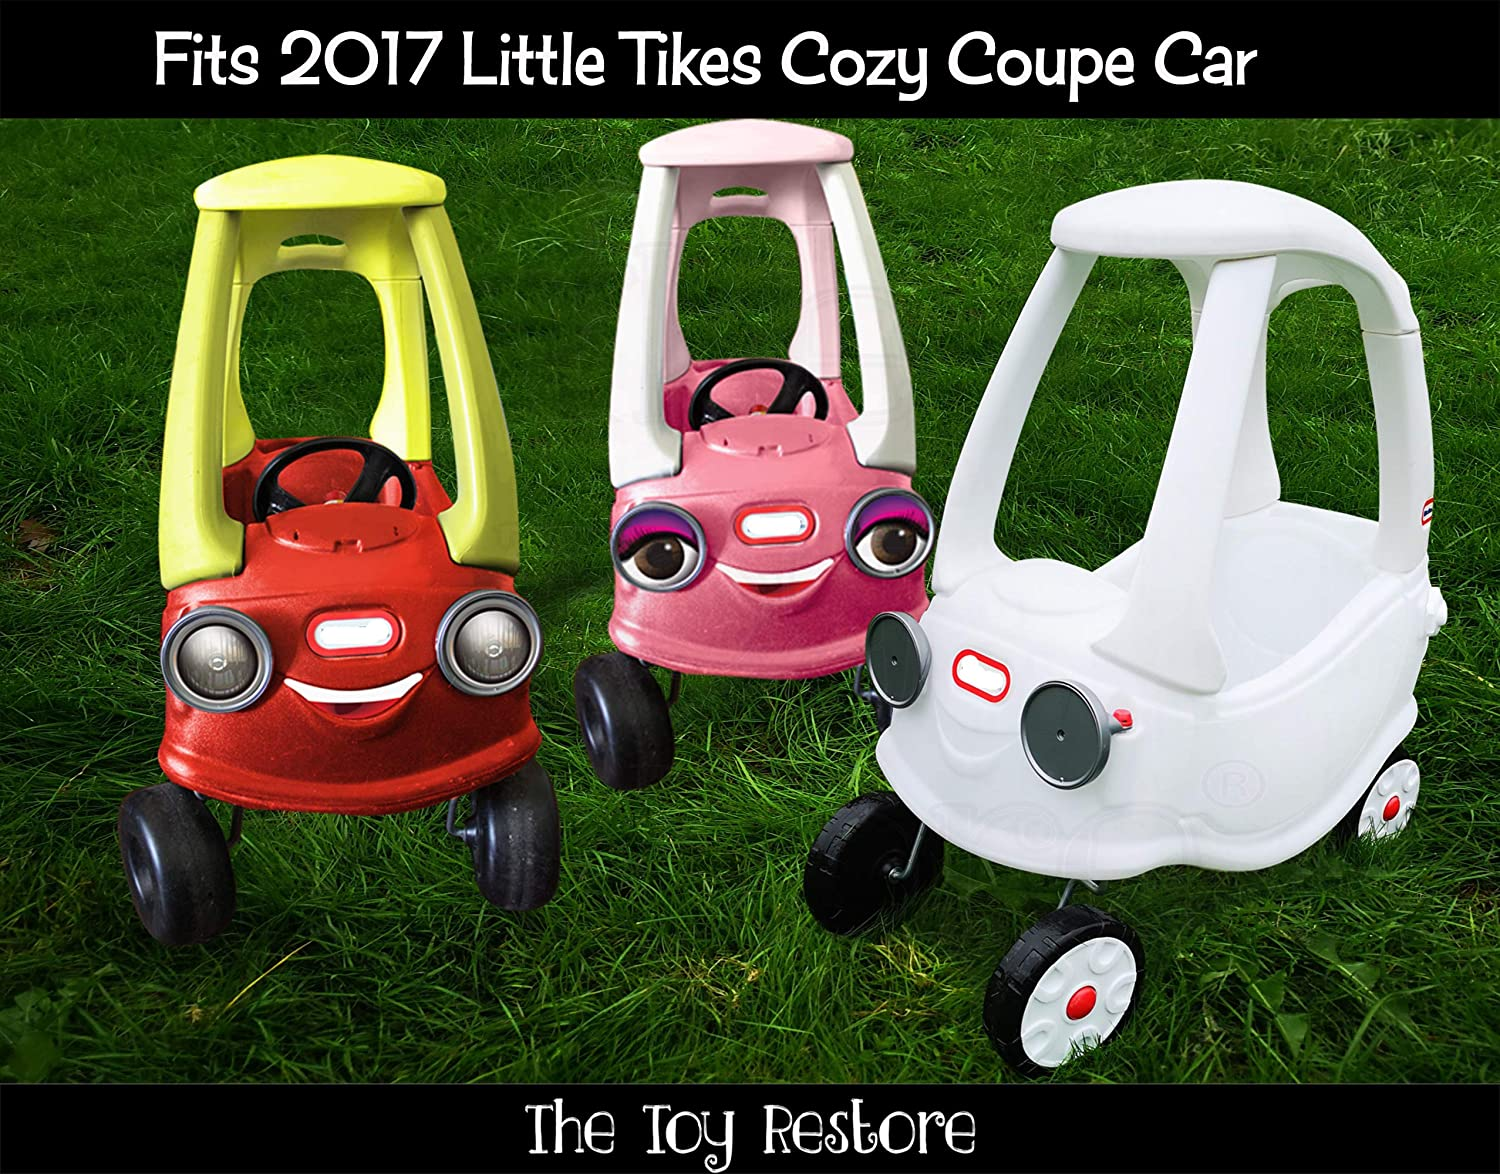 Amazon Com The Toy Restore Black Gold Police Door Logos And 911 And Light Decals Fits Little Tikes Cozy Coupe Toys Games [ 1174 x 1500 Pixel ]